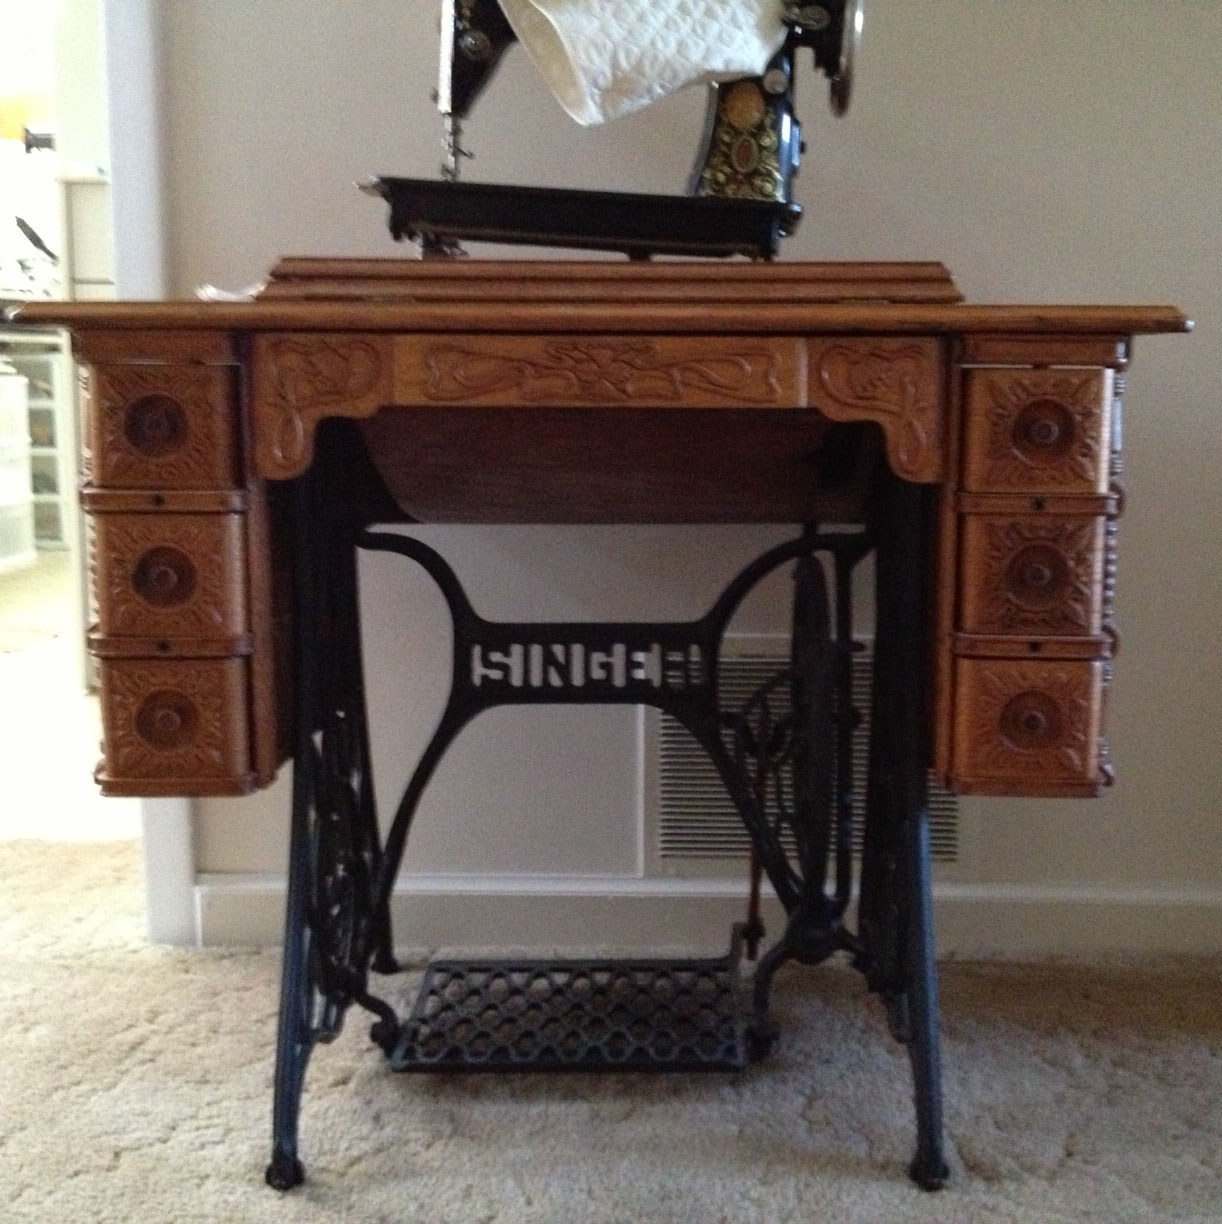 Shenandoah Valley Quilter: My vintage sewing machine ...